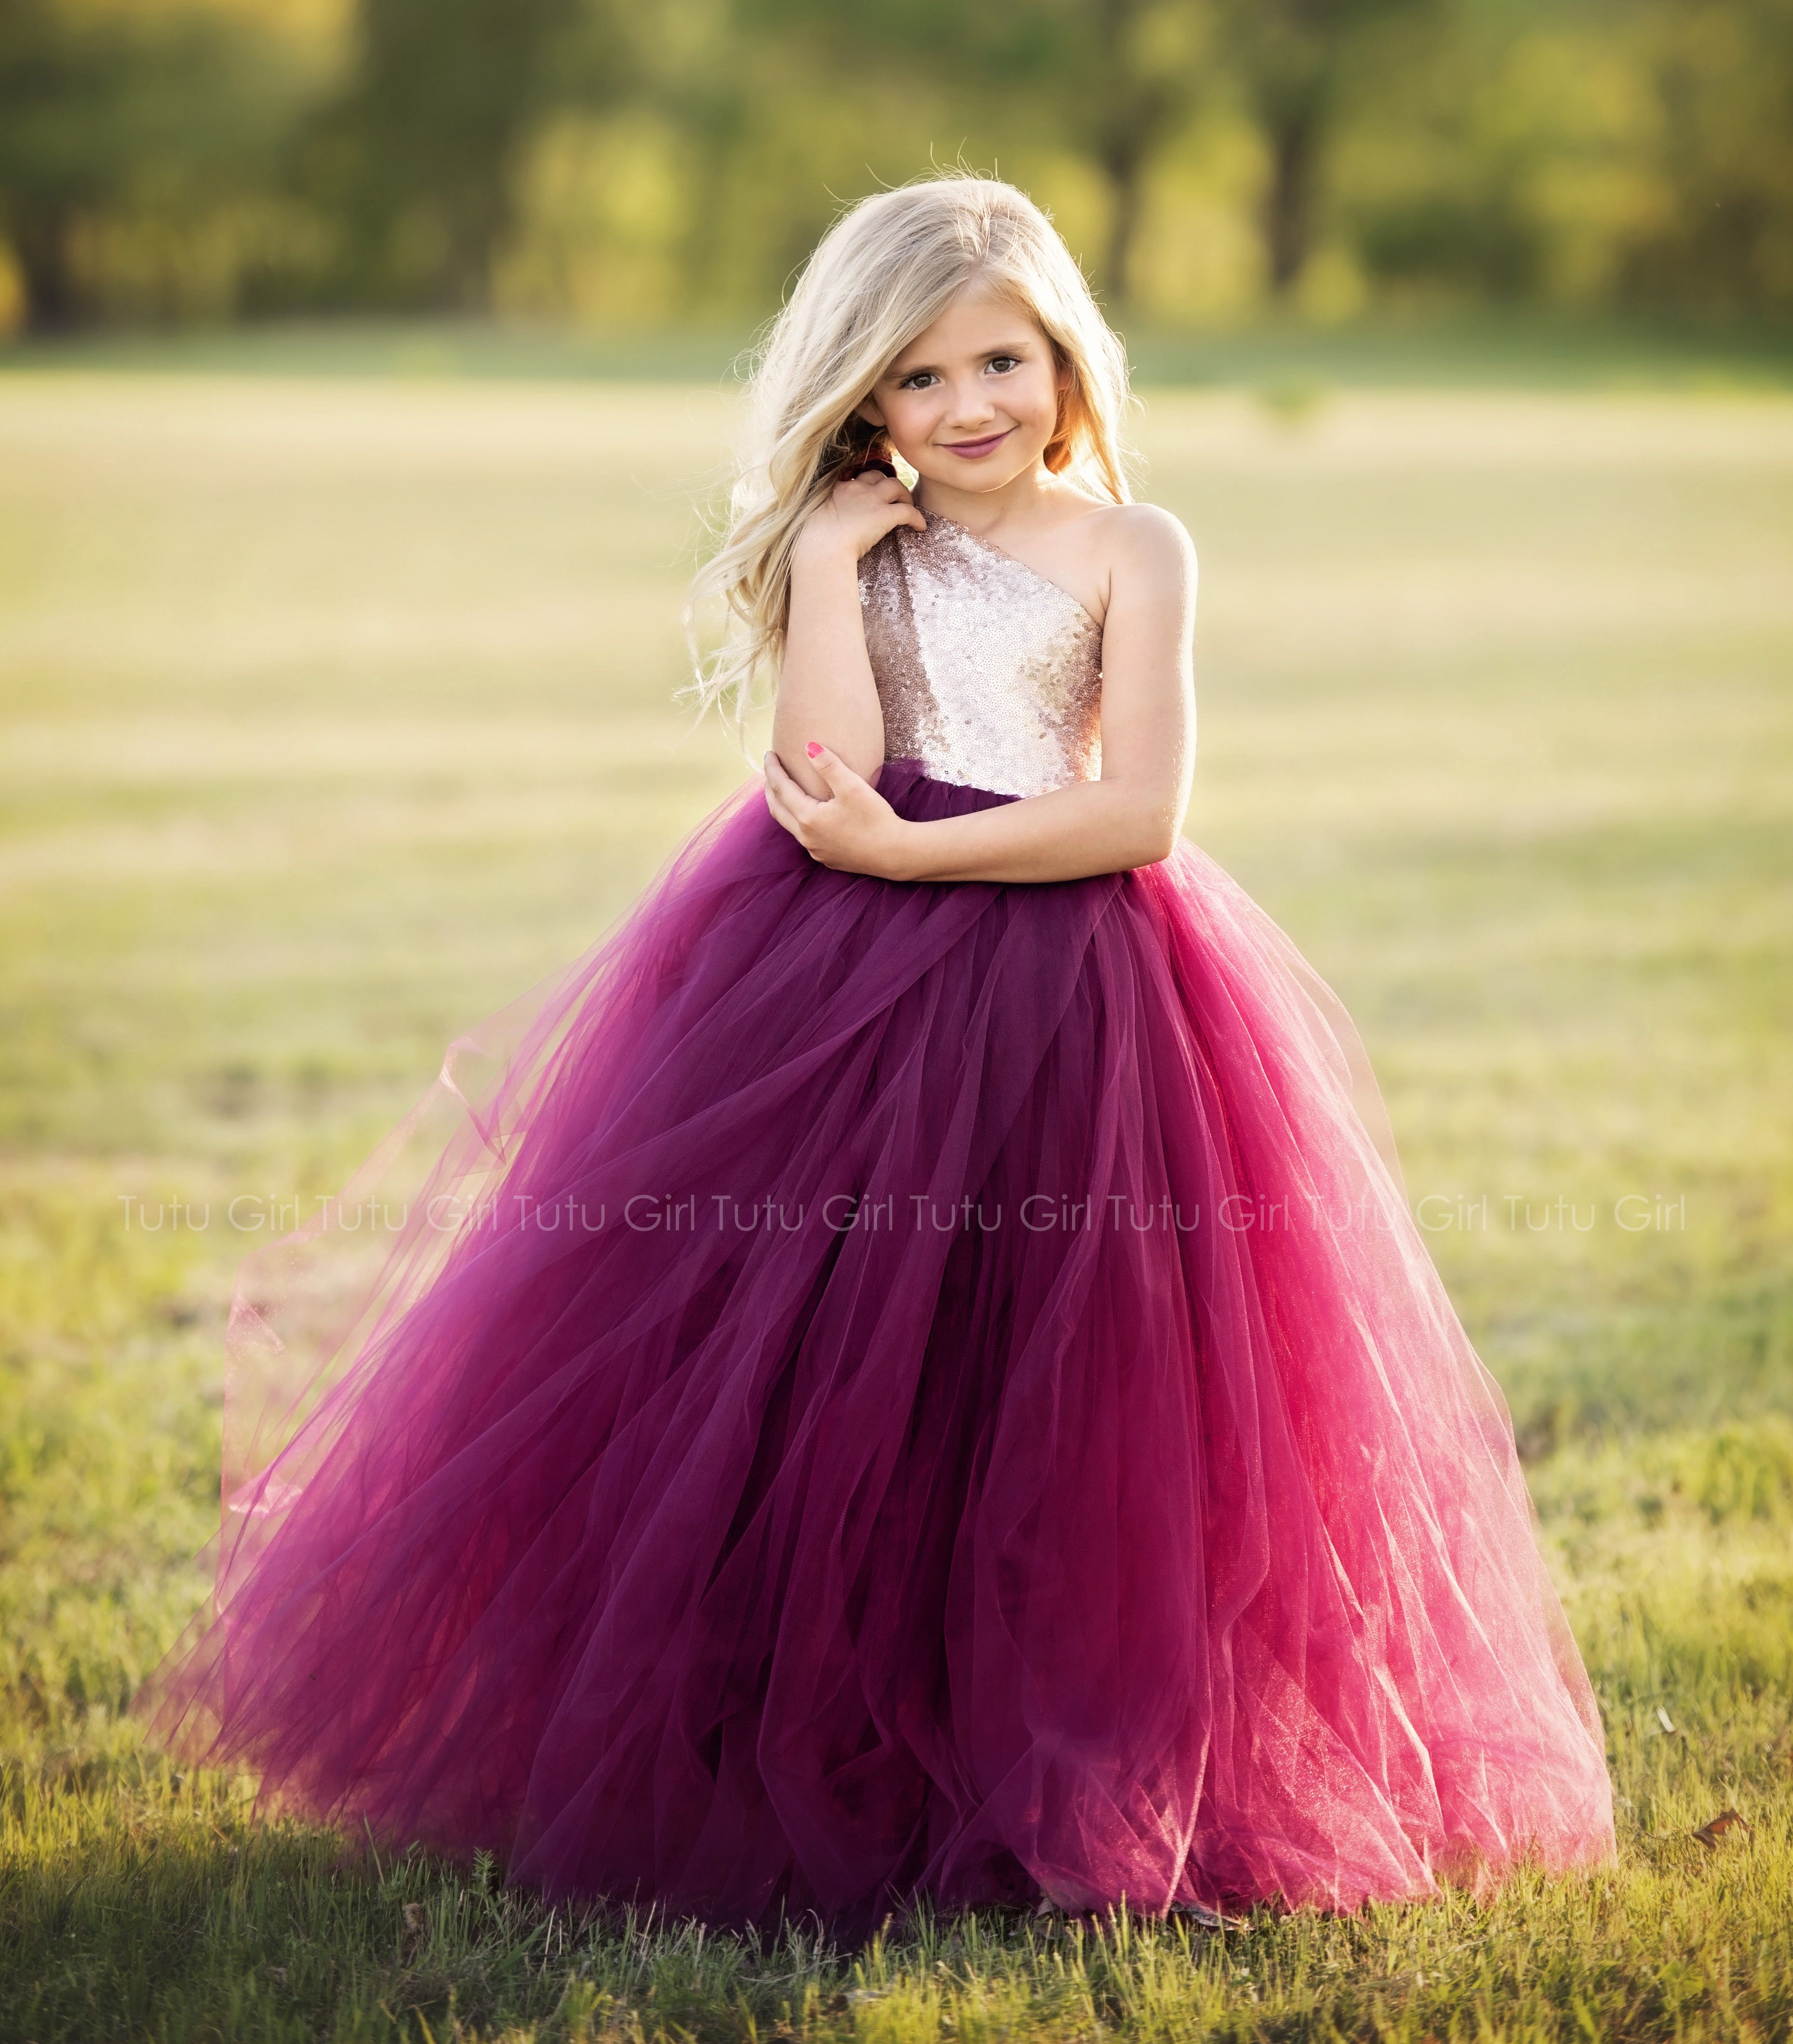 Burgundy Flower Girl Tutu Dress With Sequins One Shoulder Dress